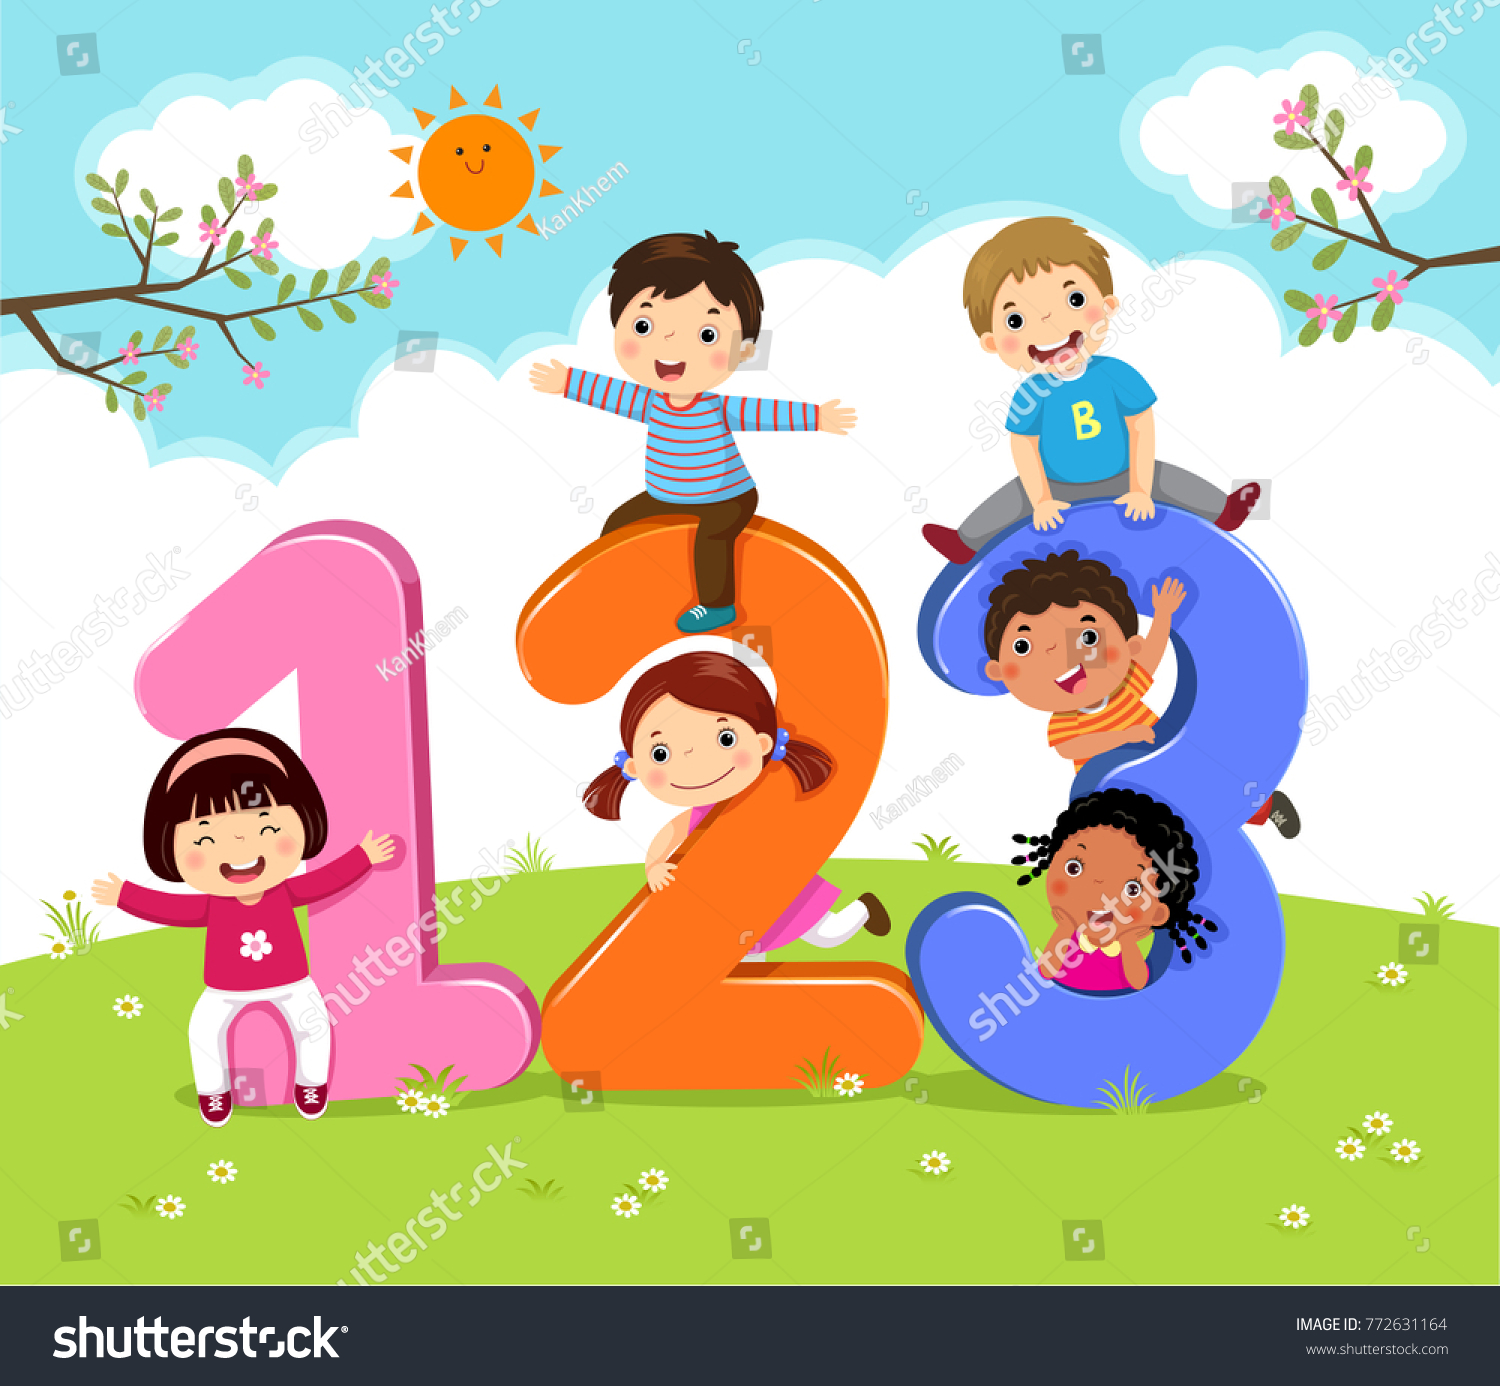 cartoon kids with 123 numbers - Kids Cartoon Picture